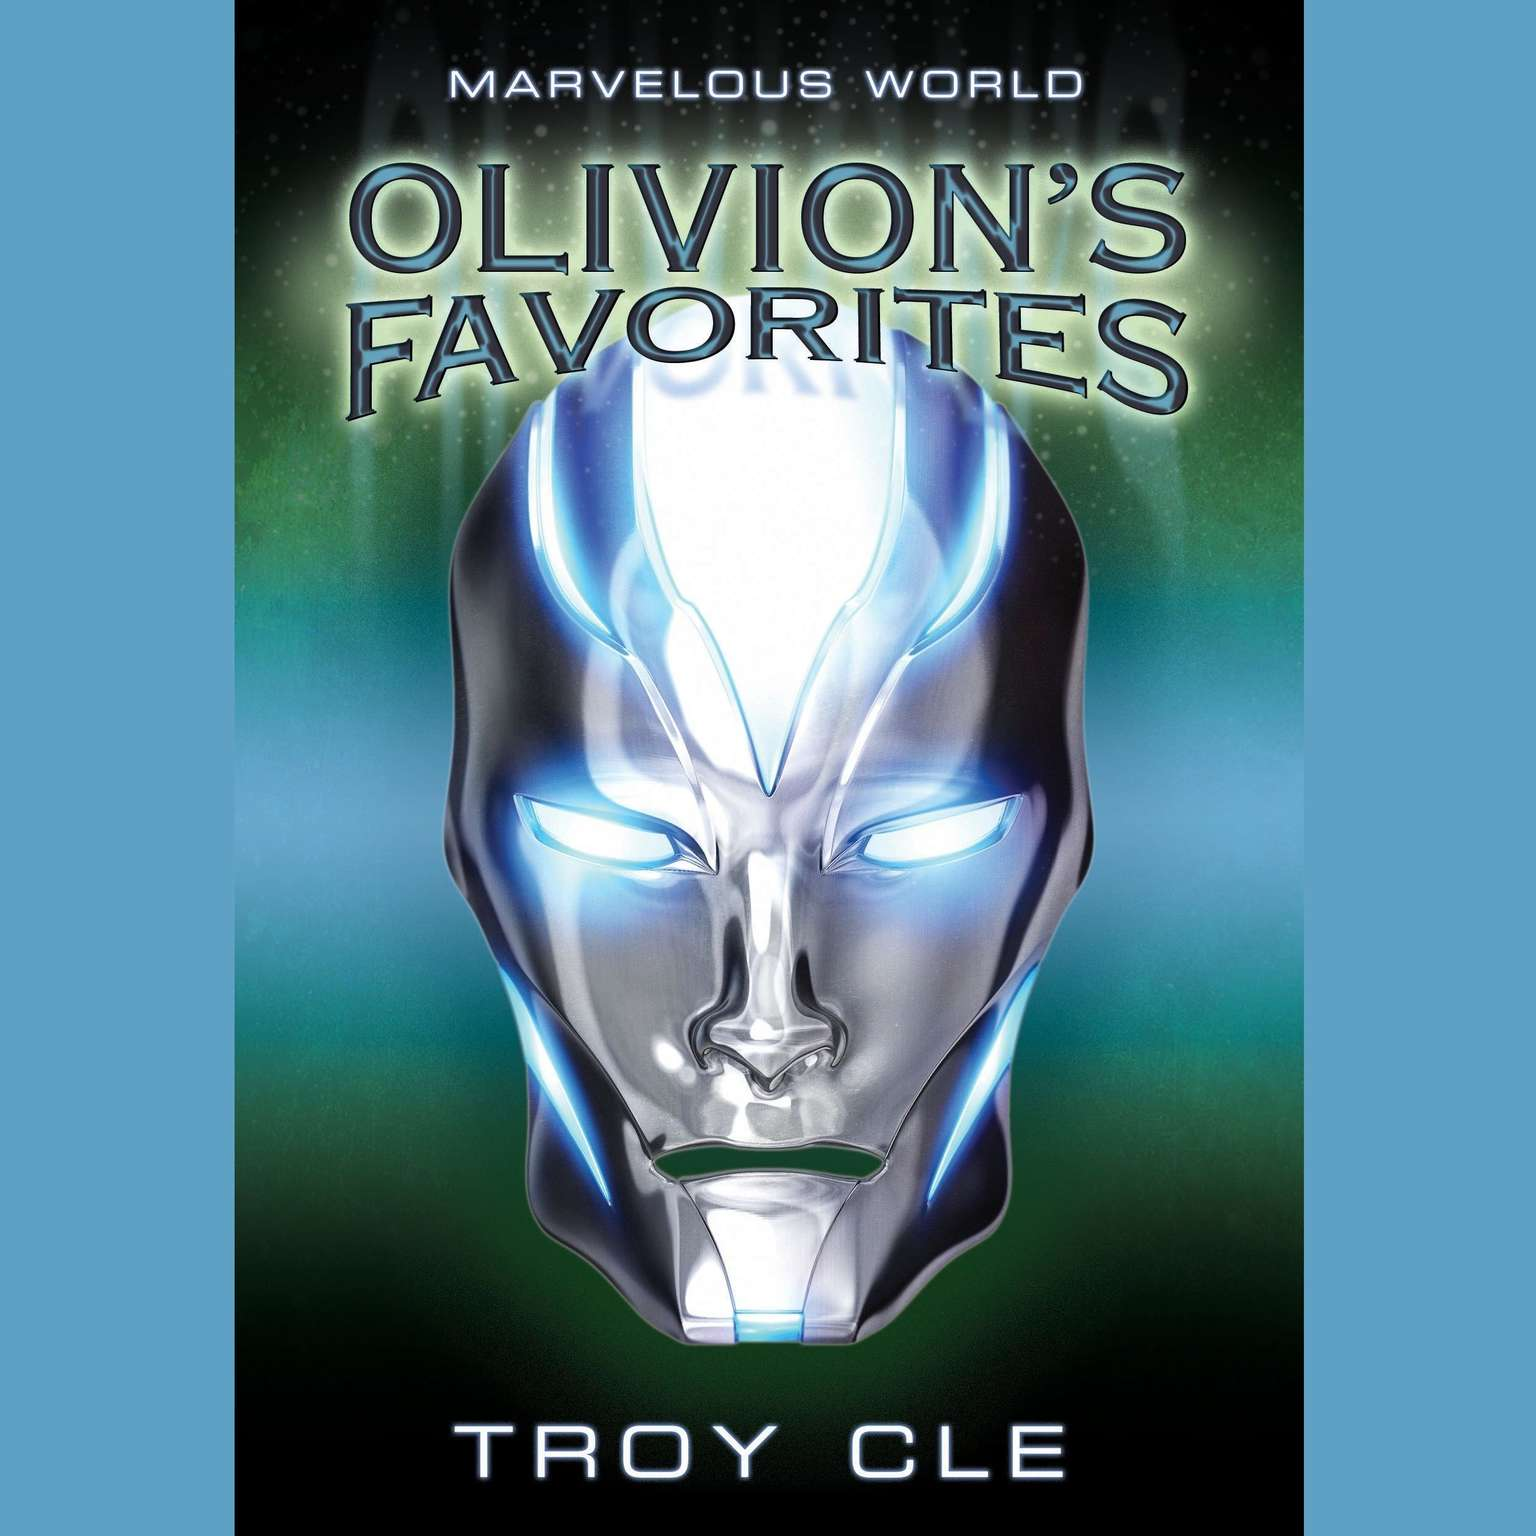 Printable Olivion's Favorites: Marvelous World, Book 2 Audiobook Cover Art